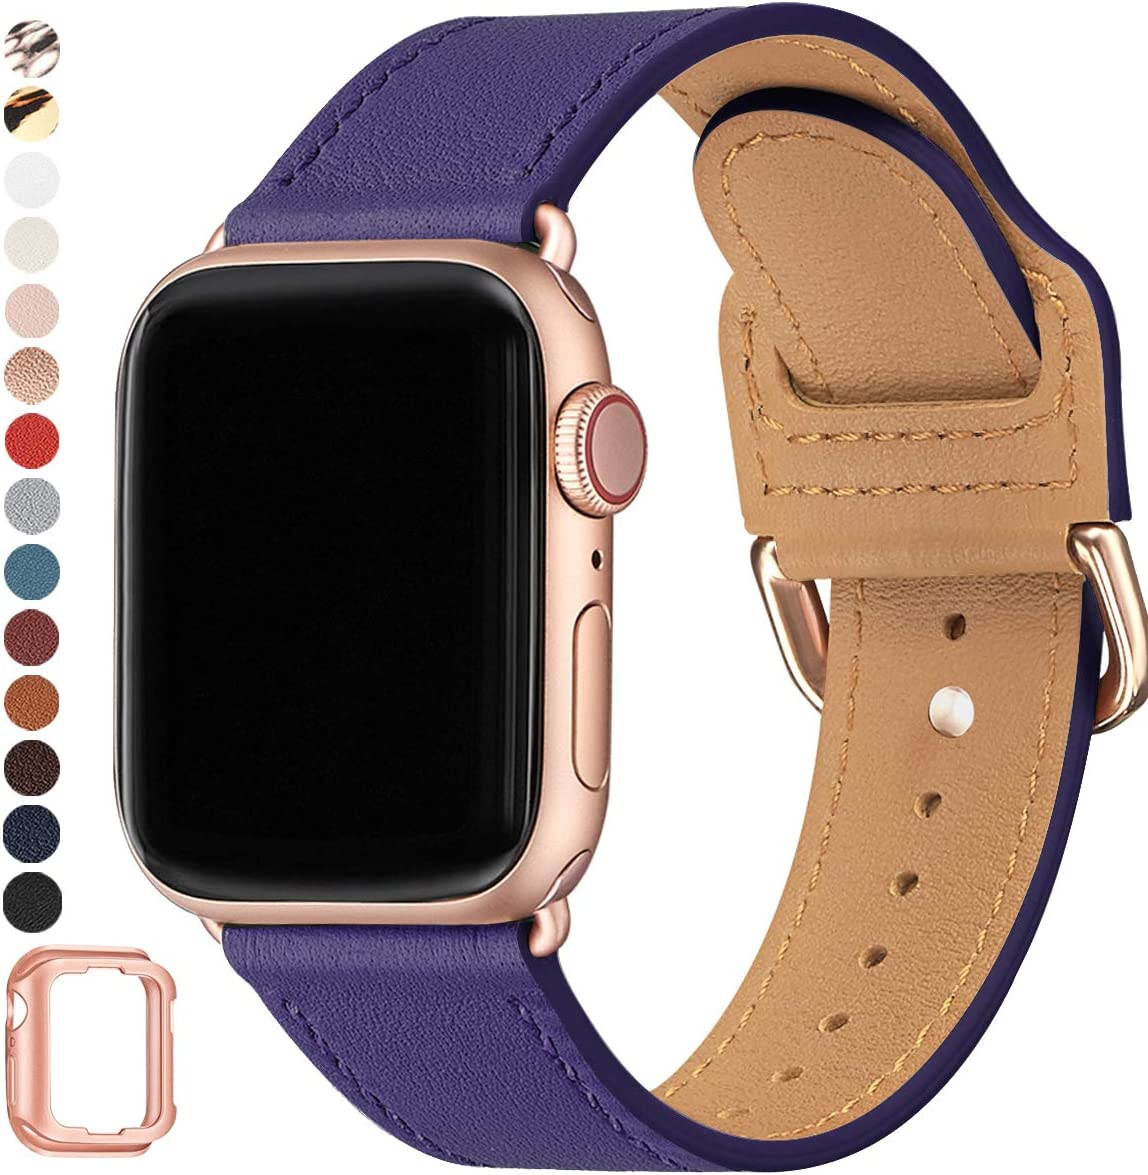 POWER PRIMACY Bands Compatible with Apple Watch Band 38mm 40mm 42mm 44mm, Top Grain Leather Smart Watch Strap Compatible for Men Women iWatch Series 6 5 4 3 2 1,SE (Eggplant purple/Rosegold, 38mm 40mm)